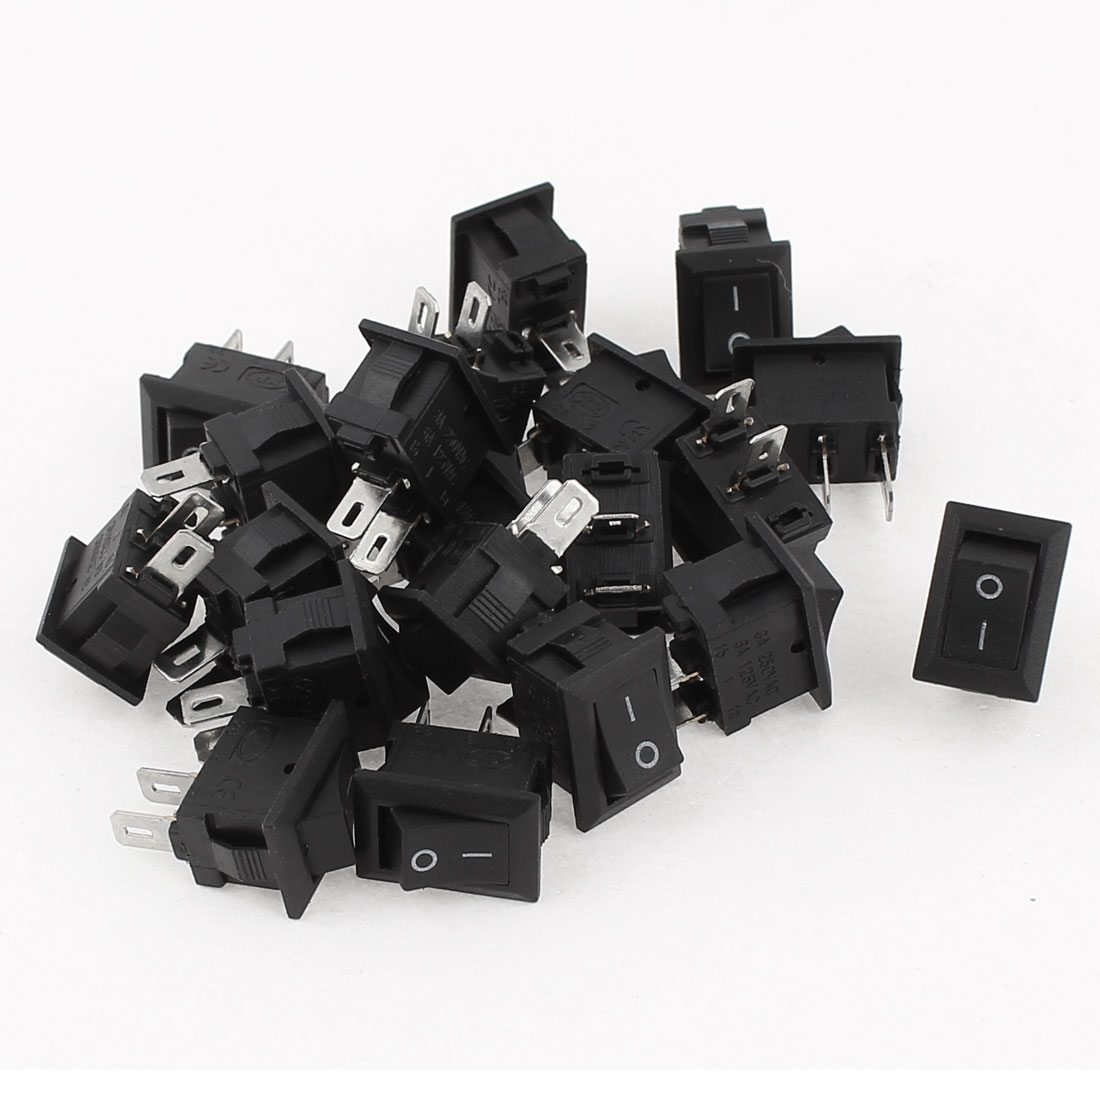 20 Pcs AC 250V 3A AC 125V 6A 2 Pin ON/OFF SPST Snap in Boat Rocker Switch